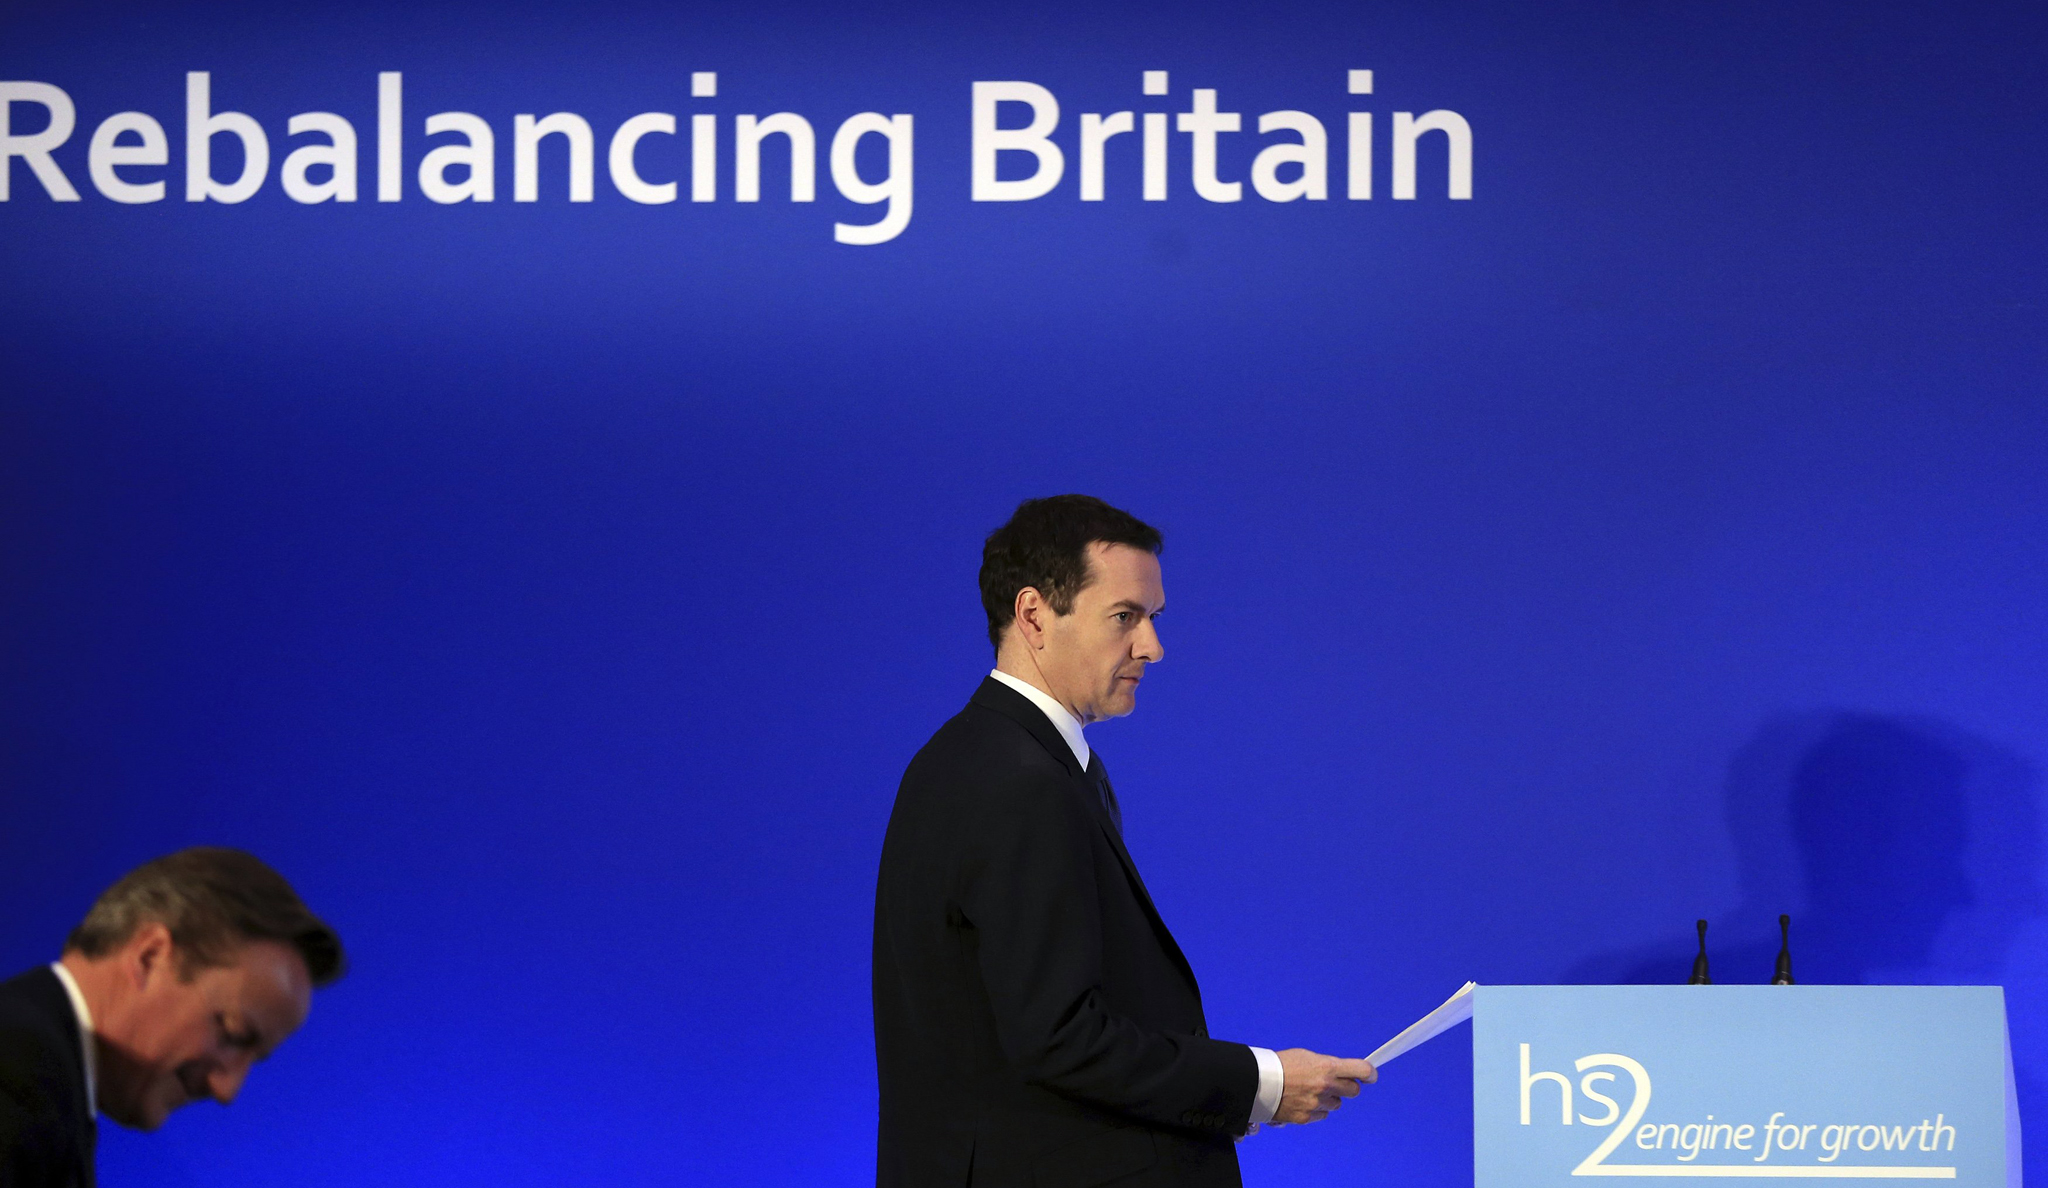 Chancellor George Osborne prepares to speak on high speed rail link HS2, at the launch of the HS2 report, in Leeds Civic Hall...Chancellor George Osborne prepares to speak on high speed rail link HS2, at the launch of the HS2 report, in Leeds Civic Hall, northern England October 27, 2014.     REUTERS/Lynne Cameron/Pool   (BRITAIN - Tags: BUSINESS POLITICS TRANSPORT)